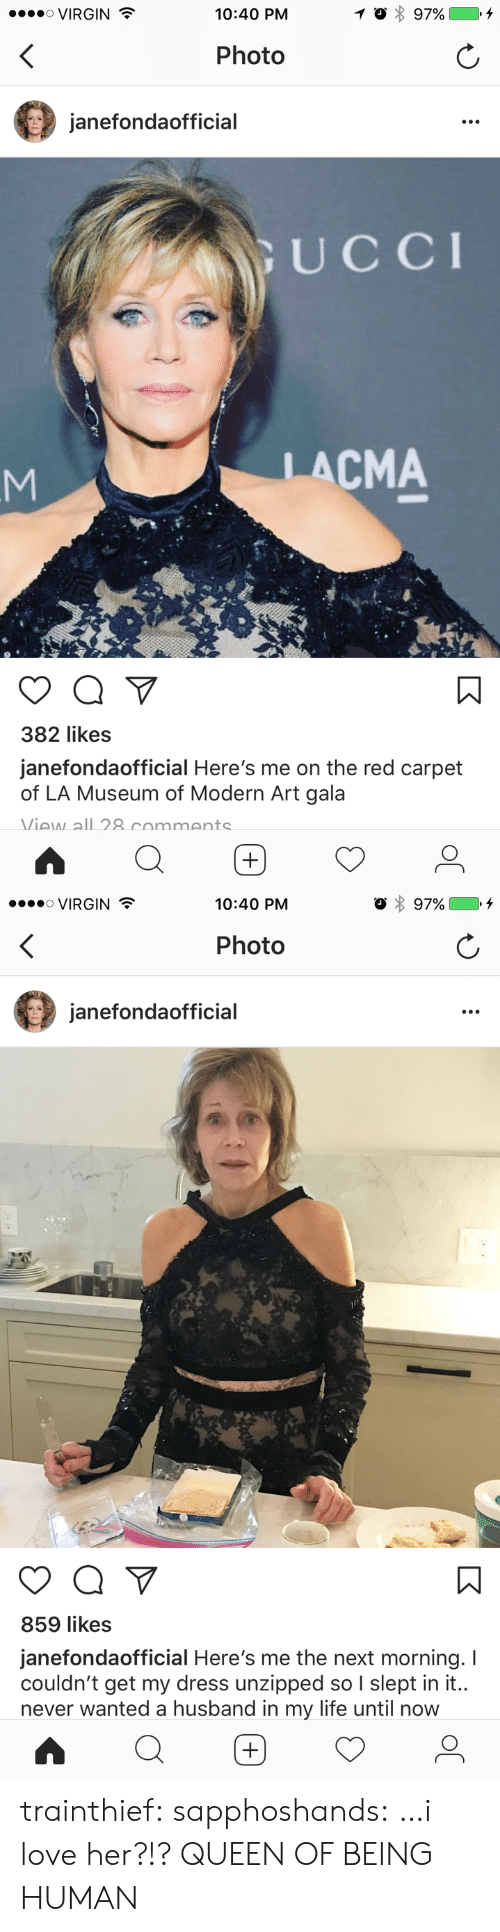 carpet: ....。VIRGIN  10:40 PM  Photo  janefondaofficial  UCCI  LACMA  382 likes  janefondaofficial Here's me on the red carpet  of LA Museum of Modern Art gala  Viaw all 8 commants   VIRGIN  10:40 PM  Photo  janefondaofficial  859 likes  janefondaofficial Here's me the next morning. I  couldn't get my dress unzipped so I slept in it..  never wanted a husband in my life until now trainthief: sapphoshands: …i love her?!? QUEEN OF BEING HUMAN